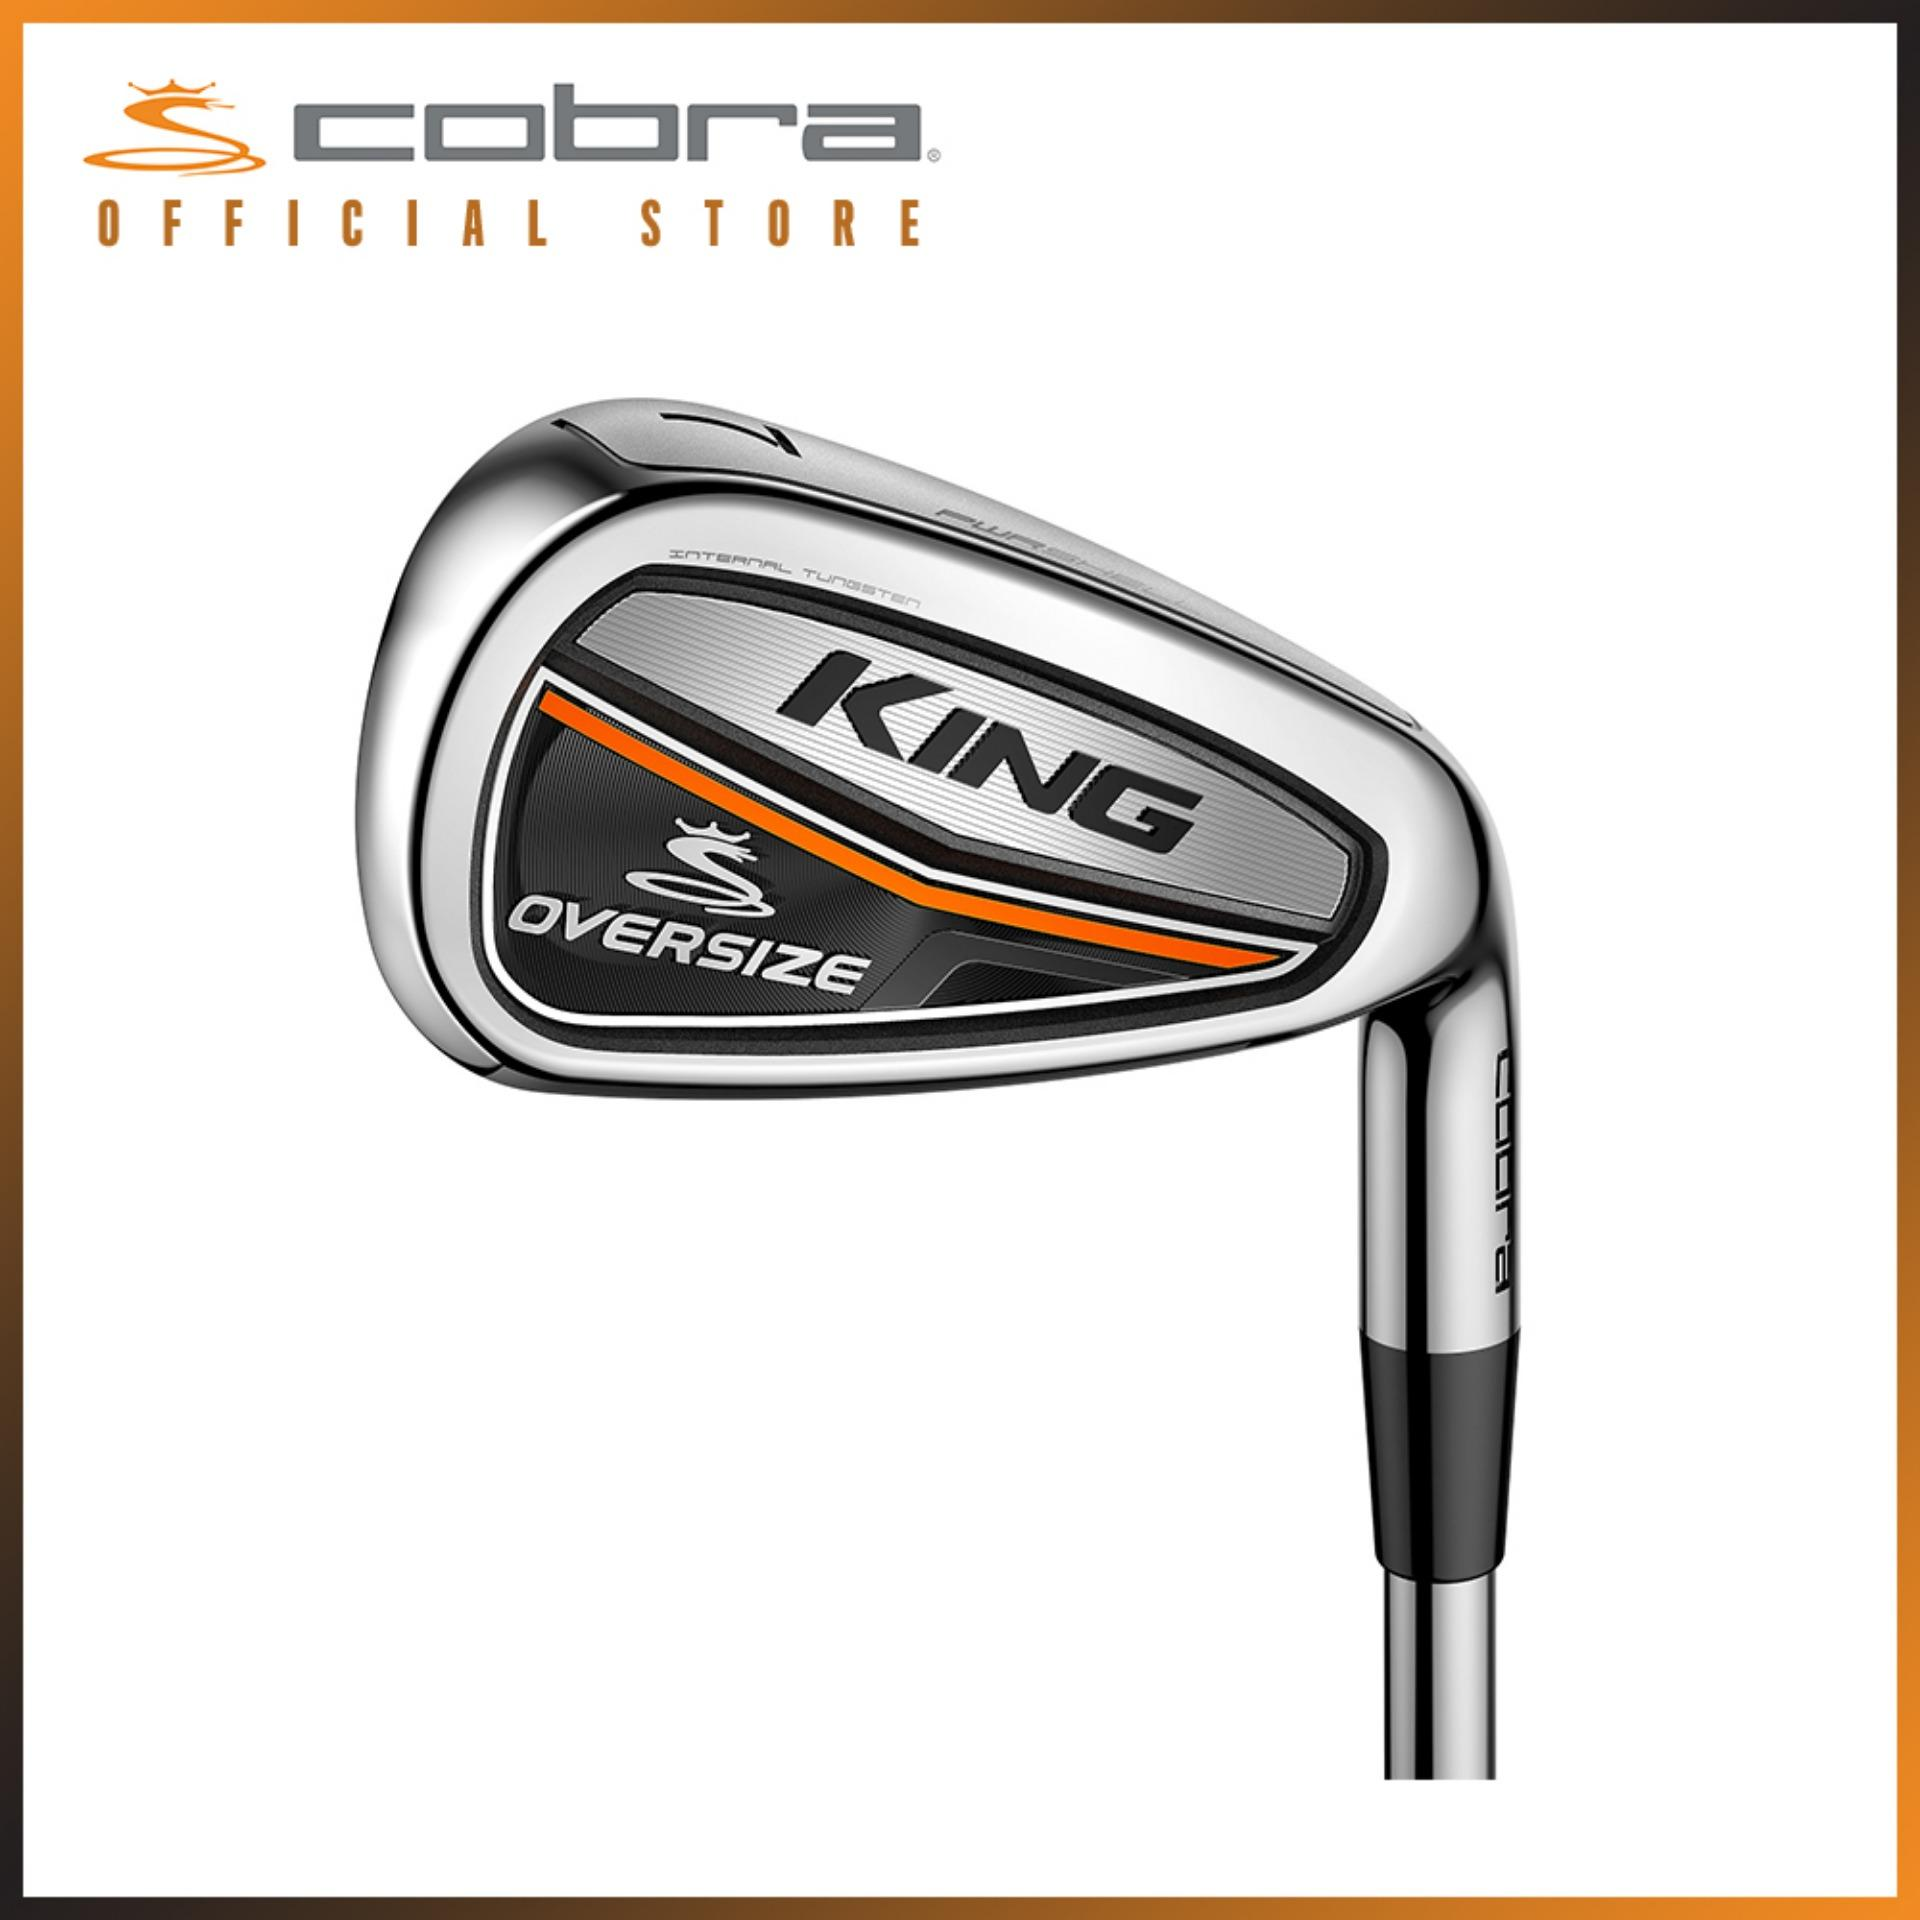 Cobra Golf King OS Iron Black (Global) Men, Graphite Regular, 5-PW (6 Clubs)